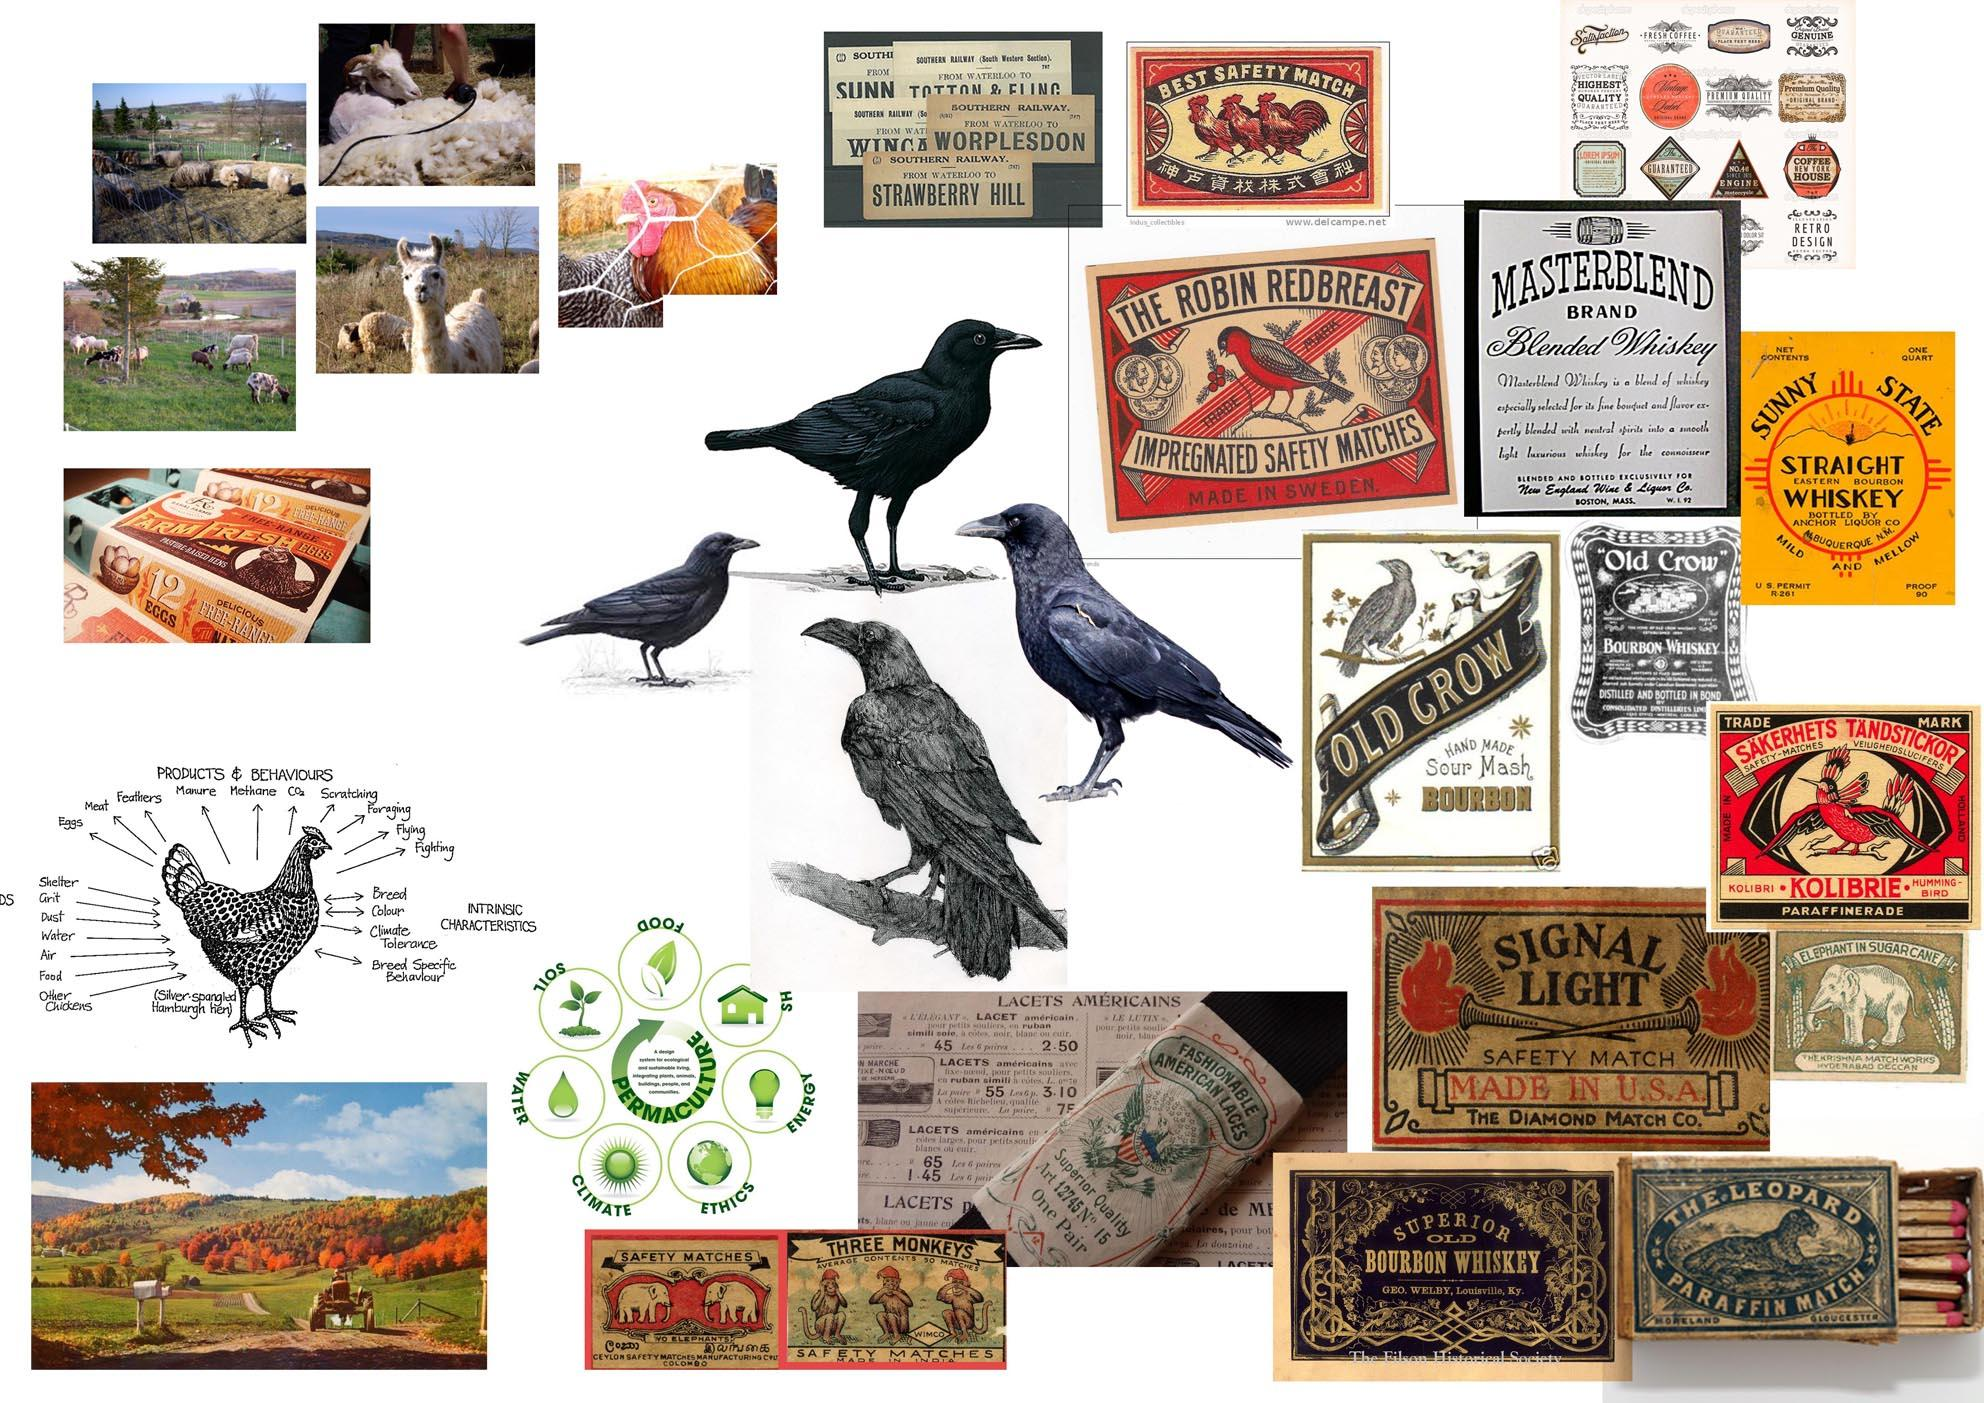 Purple Crow Permaculture - image 1 - student project